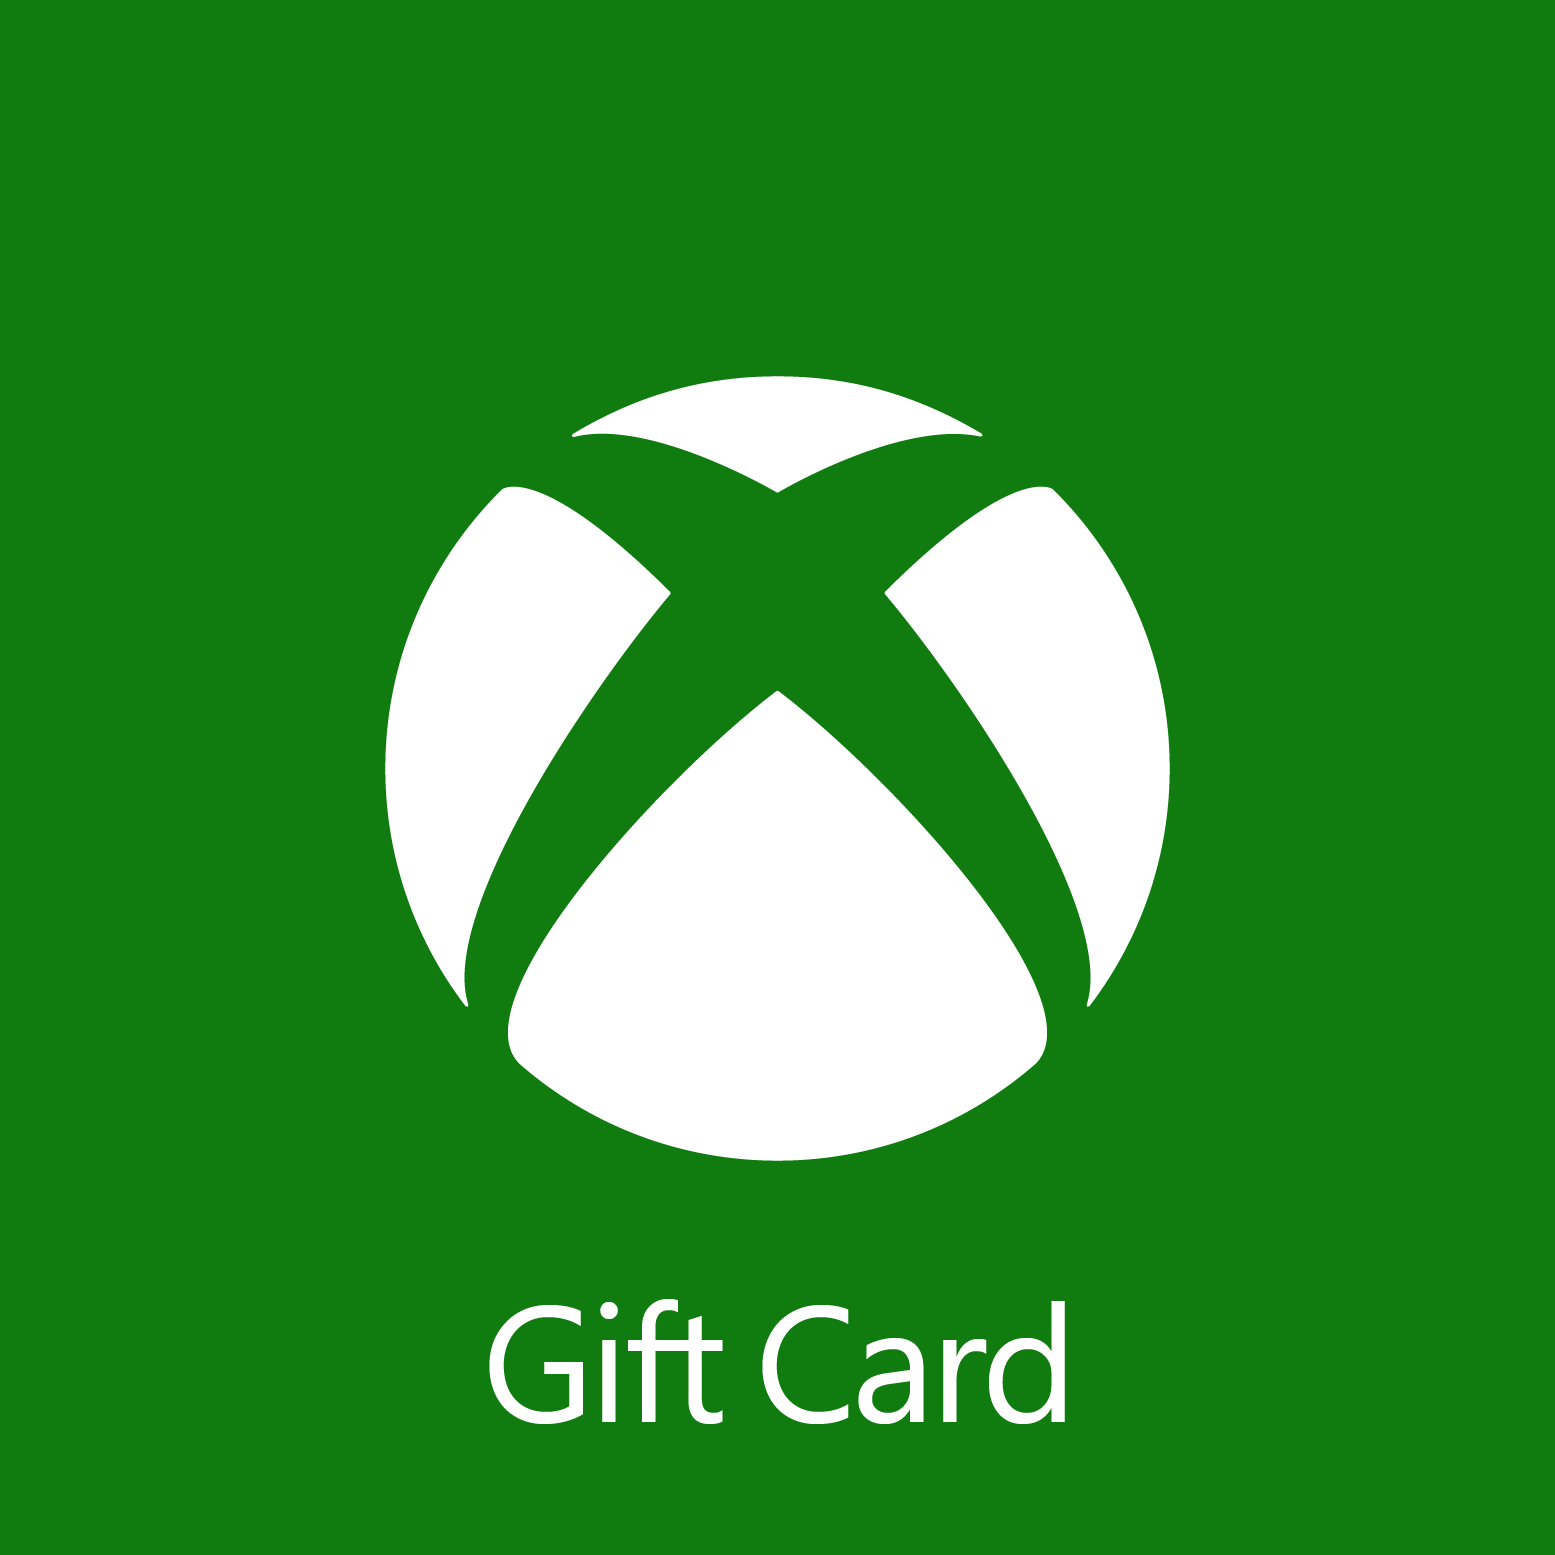 RE1Xx20?ver=255f - $95.00 Xbox Digital Gift Card